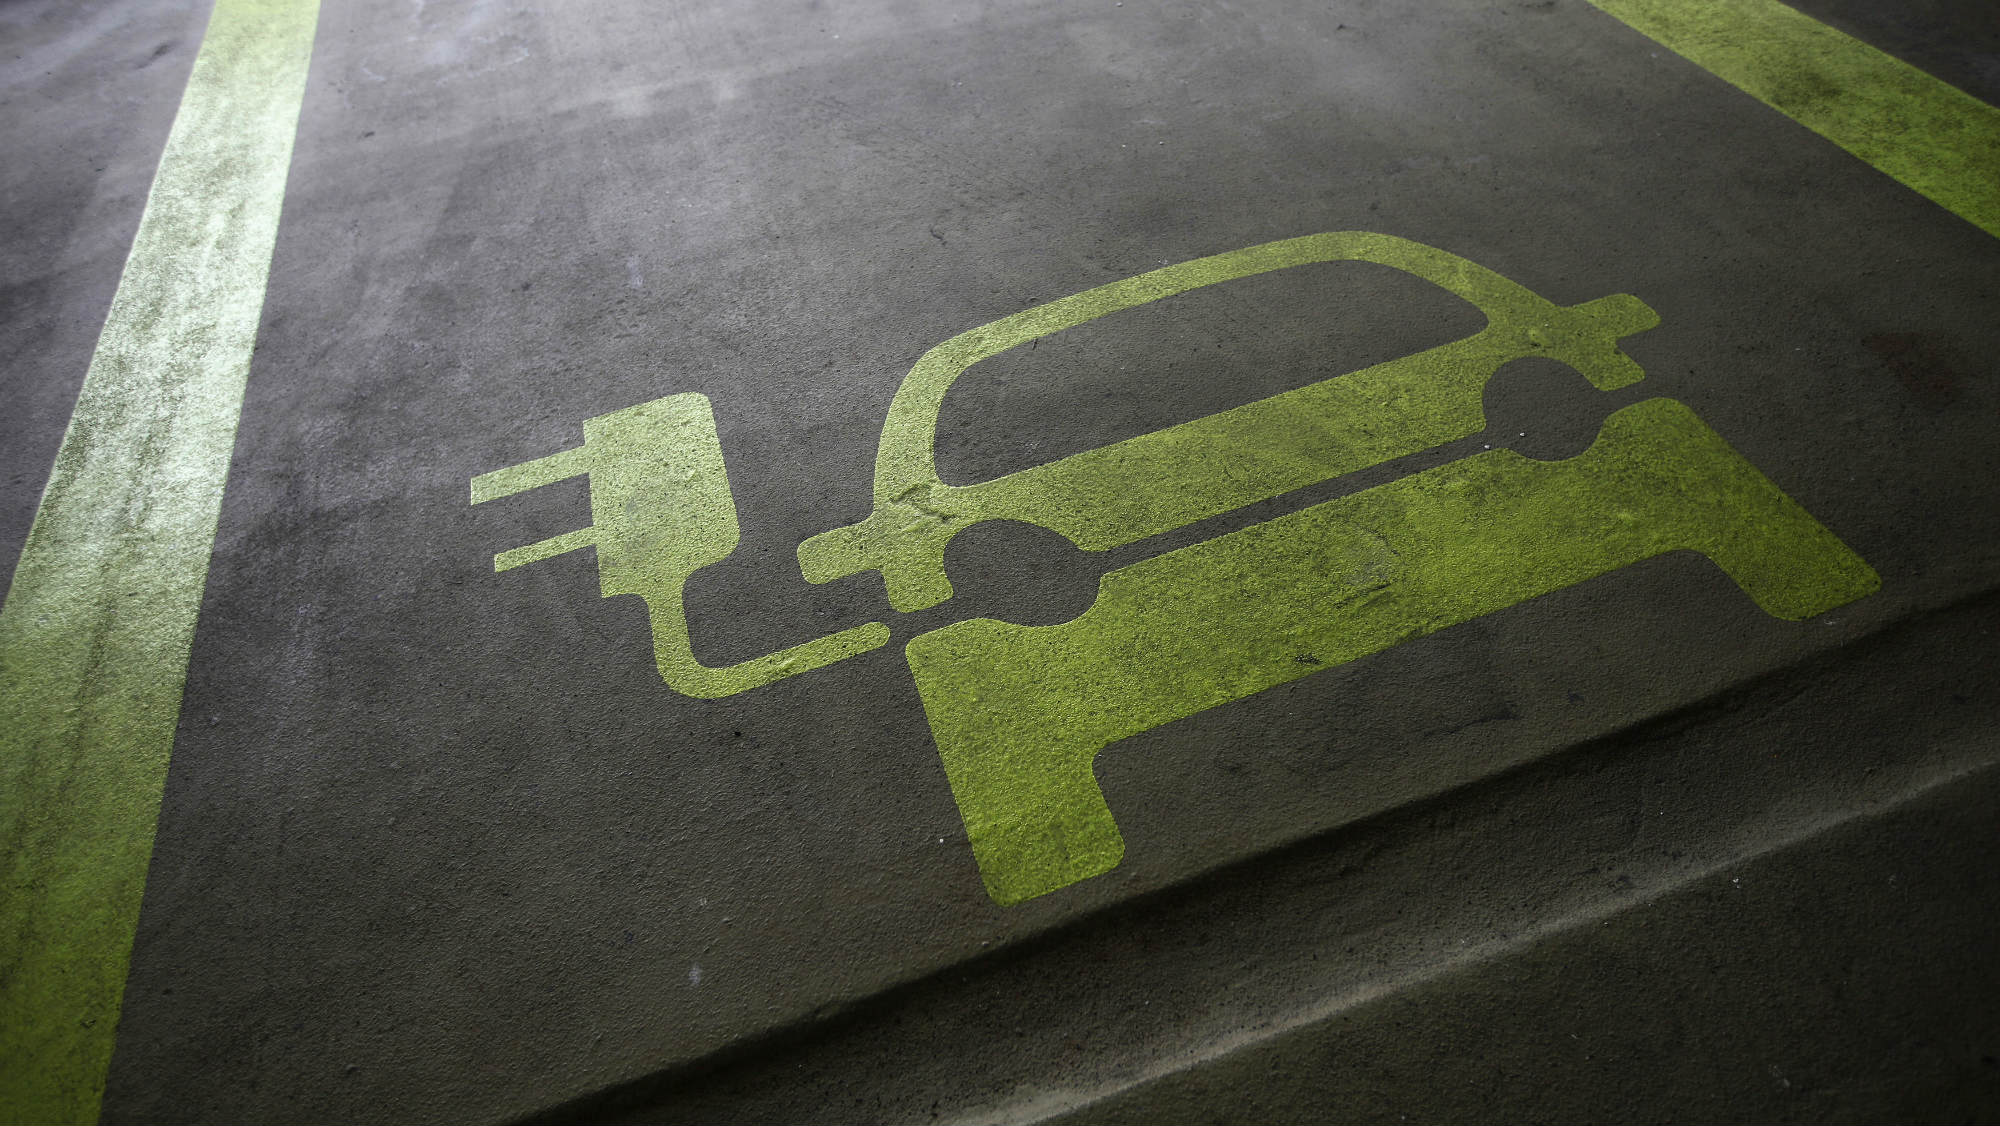 A sign is painted on a parking space for electric cars inside a car park in Hong Kong January 29, 2012. Many of the headlines out of autoshows in the past couple of years have been captured by the launch of electric cars such as Nissan's Leaf, the Tesla sports car, plug-ins like General Motors' Chevrolet Volt, and the latest incarnation of the Toyota Prius. Other manufacturers including BMW, Rolls Royce and Porsche have presented electric-powered prototypes. On the basis of this, one could be forgiven for thinking the auto industry is betting big on electric power. Yet few auto executives share the optimism of Renault and Nissan chief executive Carlos Ghosn who has repeatedly said he sees electric vehicles making up 10 percent of all sales in 2020. A survey of 200 auto industry executives conducted by KPMG released on Monday gave an average forecast for electric vehicles to account for 6-10 percent of global auto sales in 2025, more bullish than oil companies BP and Exxon who expect electric cars to make up no more than 4-5 percent of all cars globally in 20-30 years. Picture taken January 29, 2012. To match Insight ELECTRIC-CAR/BIG OIL REUTERS/Tyrone Siu (CHINA - Tags: BUSINESS ENERGY ENVIRONMENT SCIENCE TECHNOLOGY)